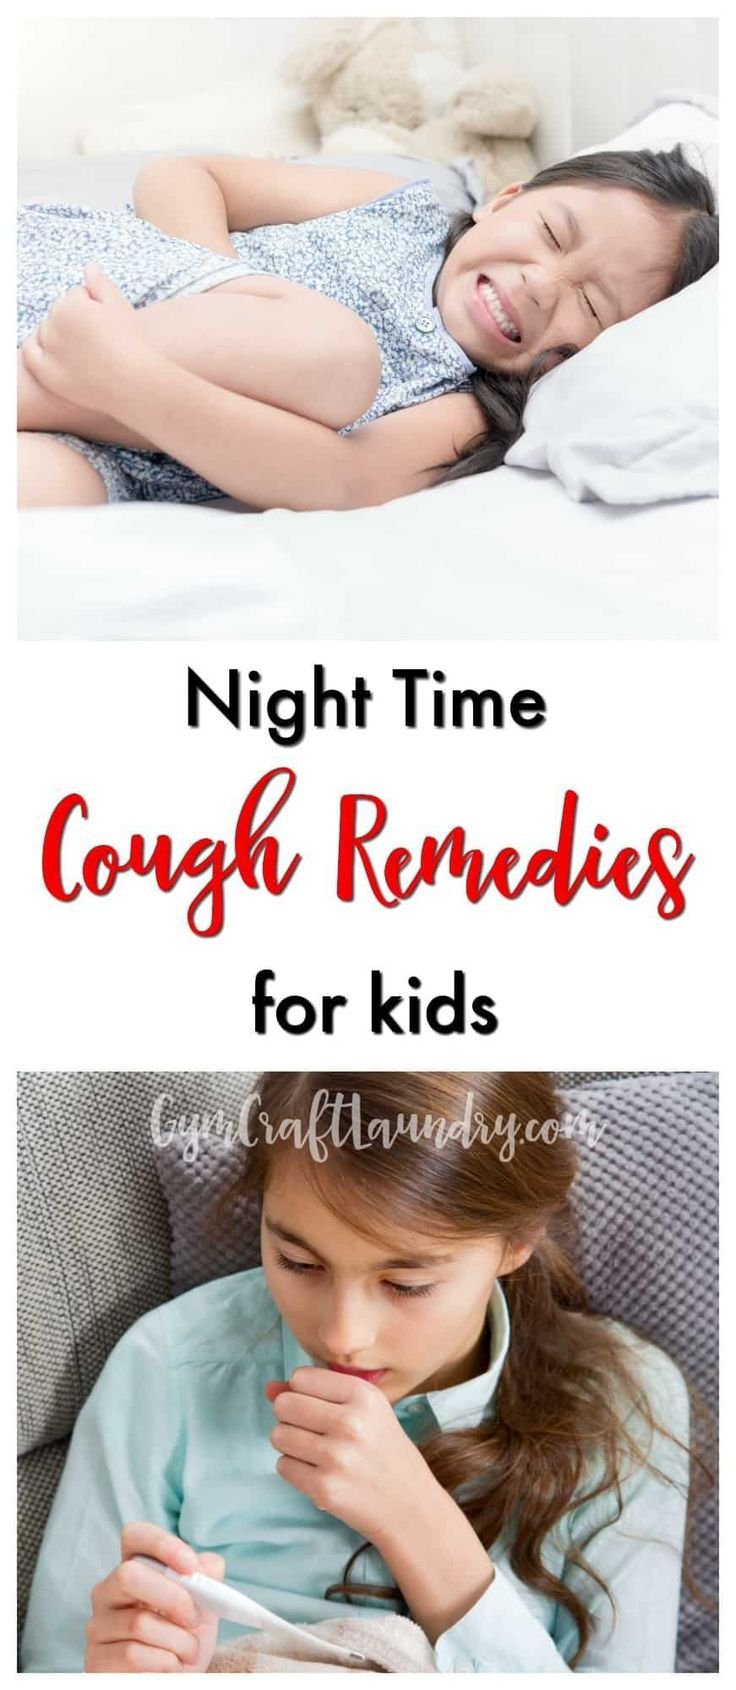 15 Cough Remedies for Kids at Night via @herchel1